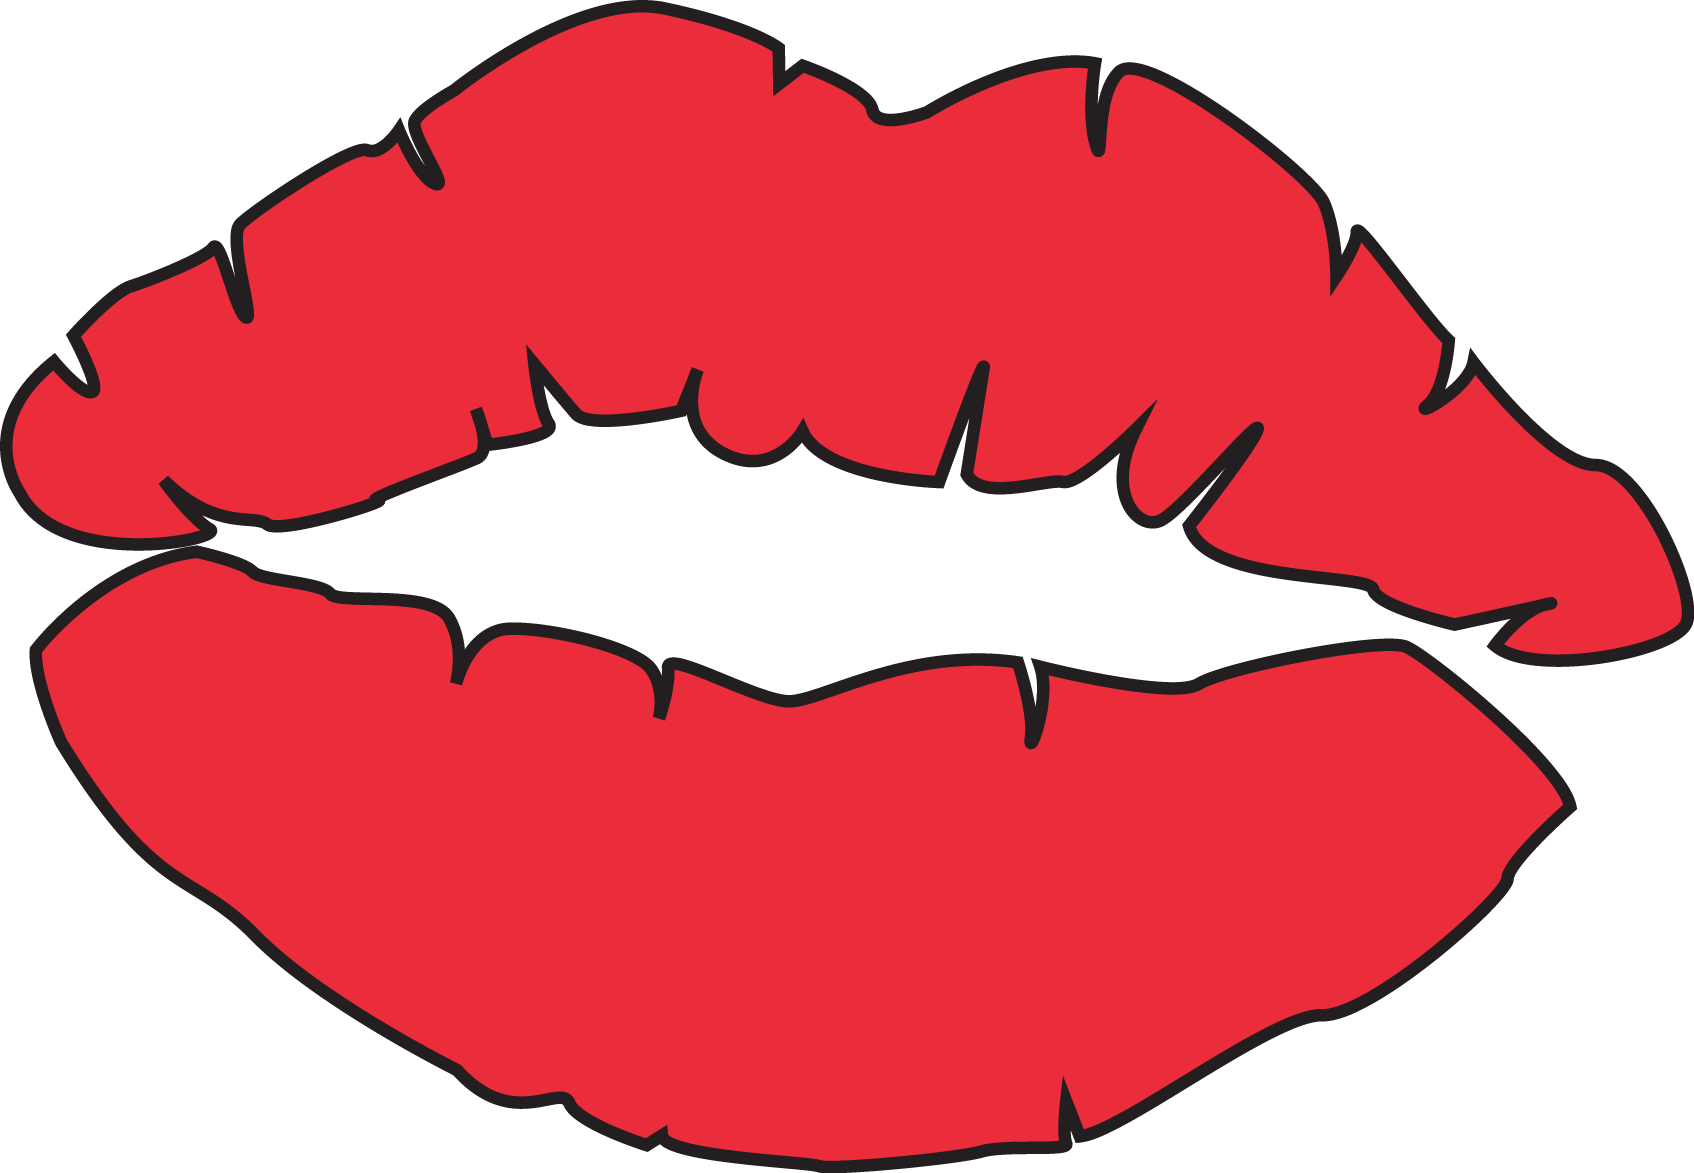 Kiss lips kissing lips clipart free download clip art on.